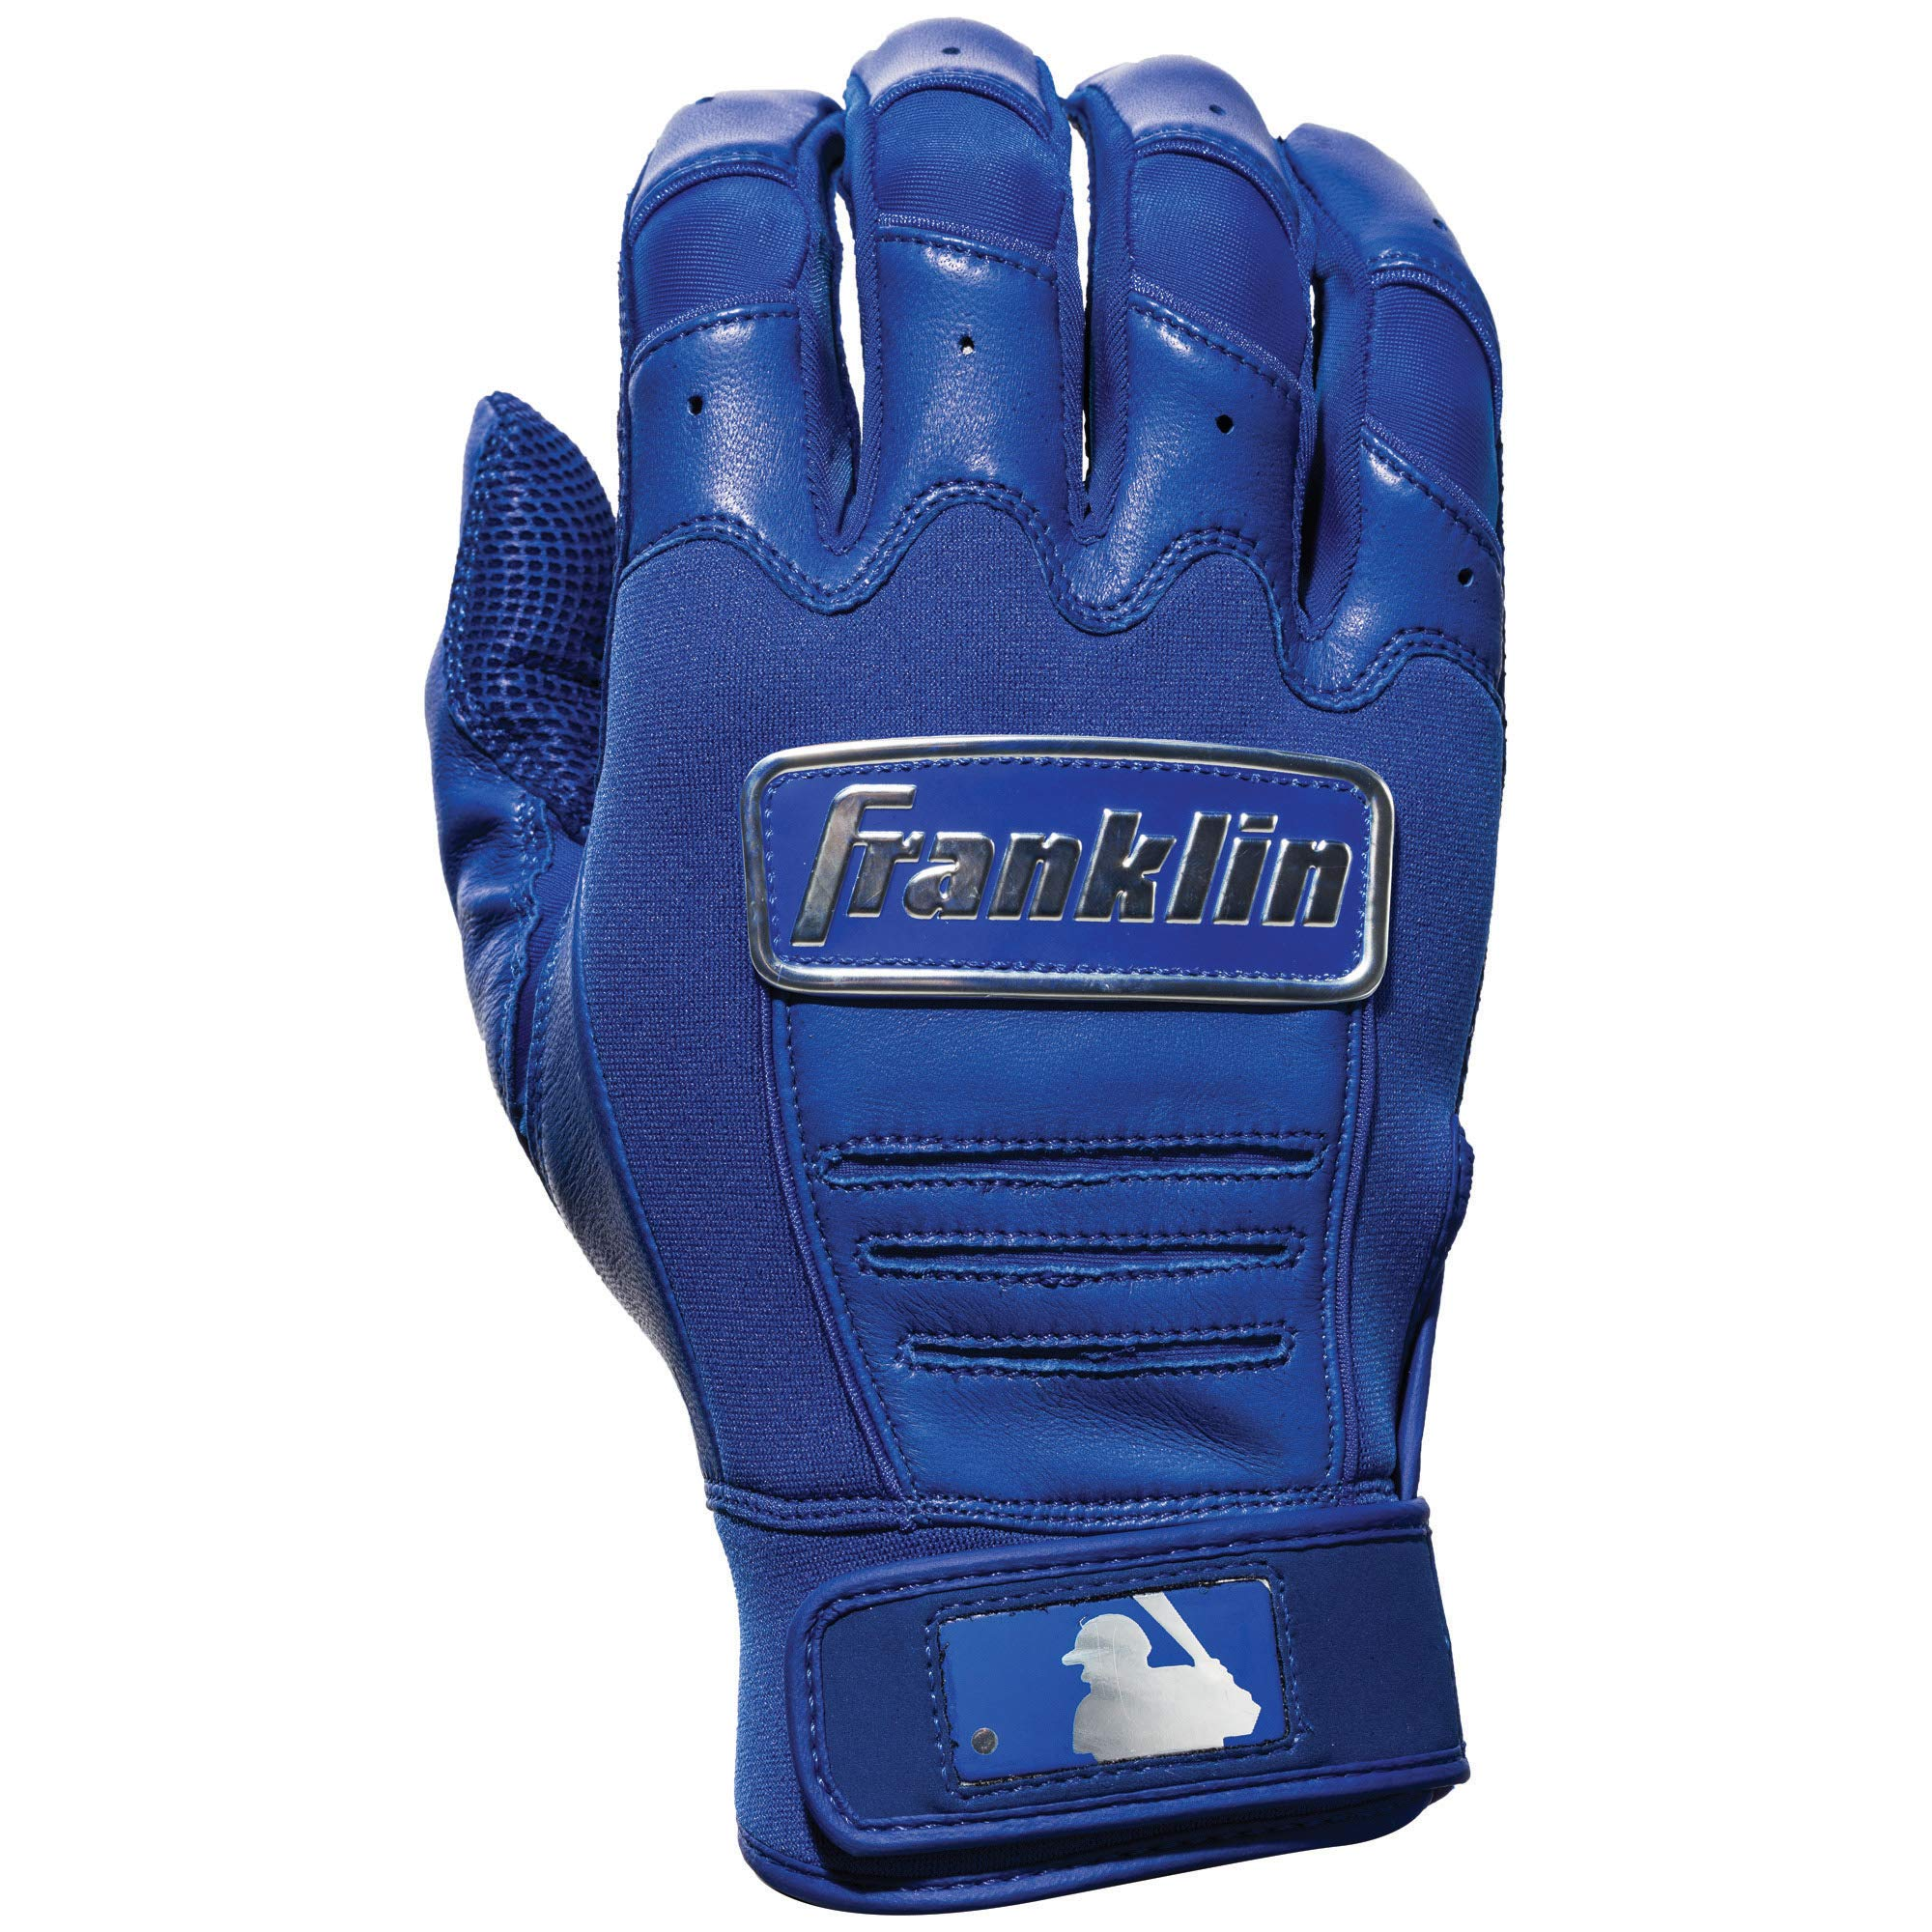 Franklin Sports CFX Pro Full Color Chrome Batting Gloves - Royal - Adult Small by Franklin Sports (Image #2)